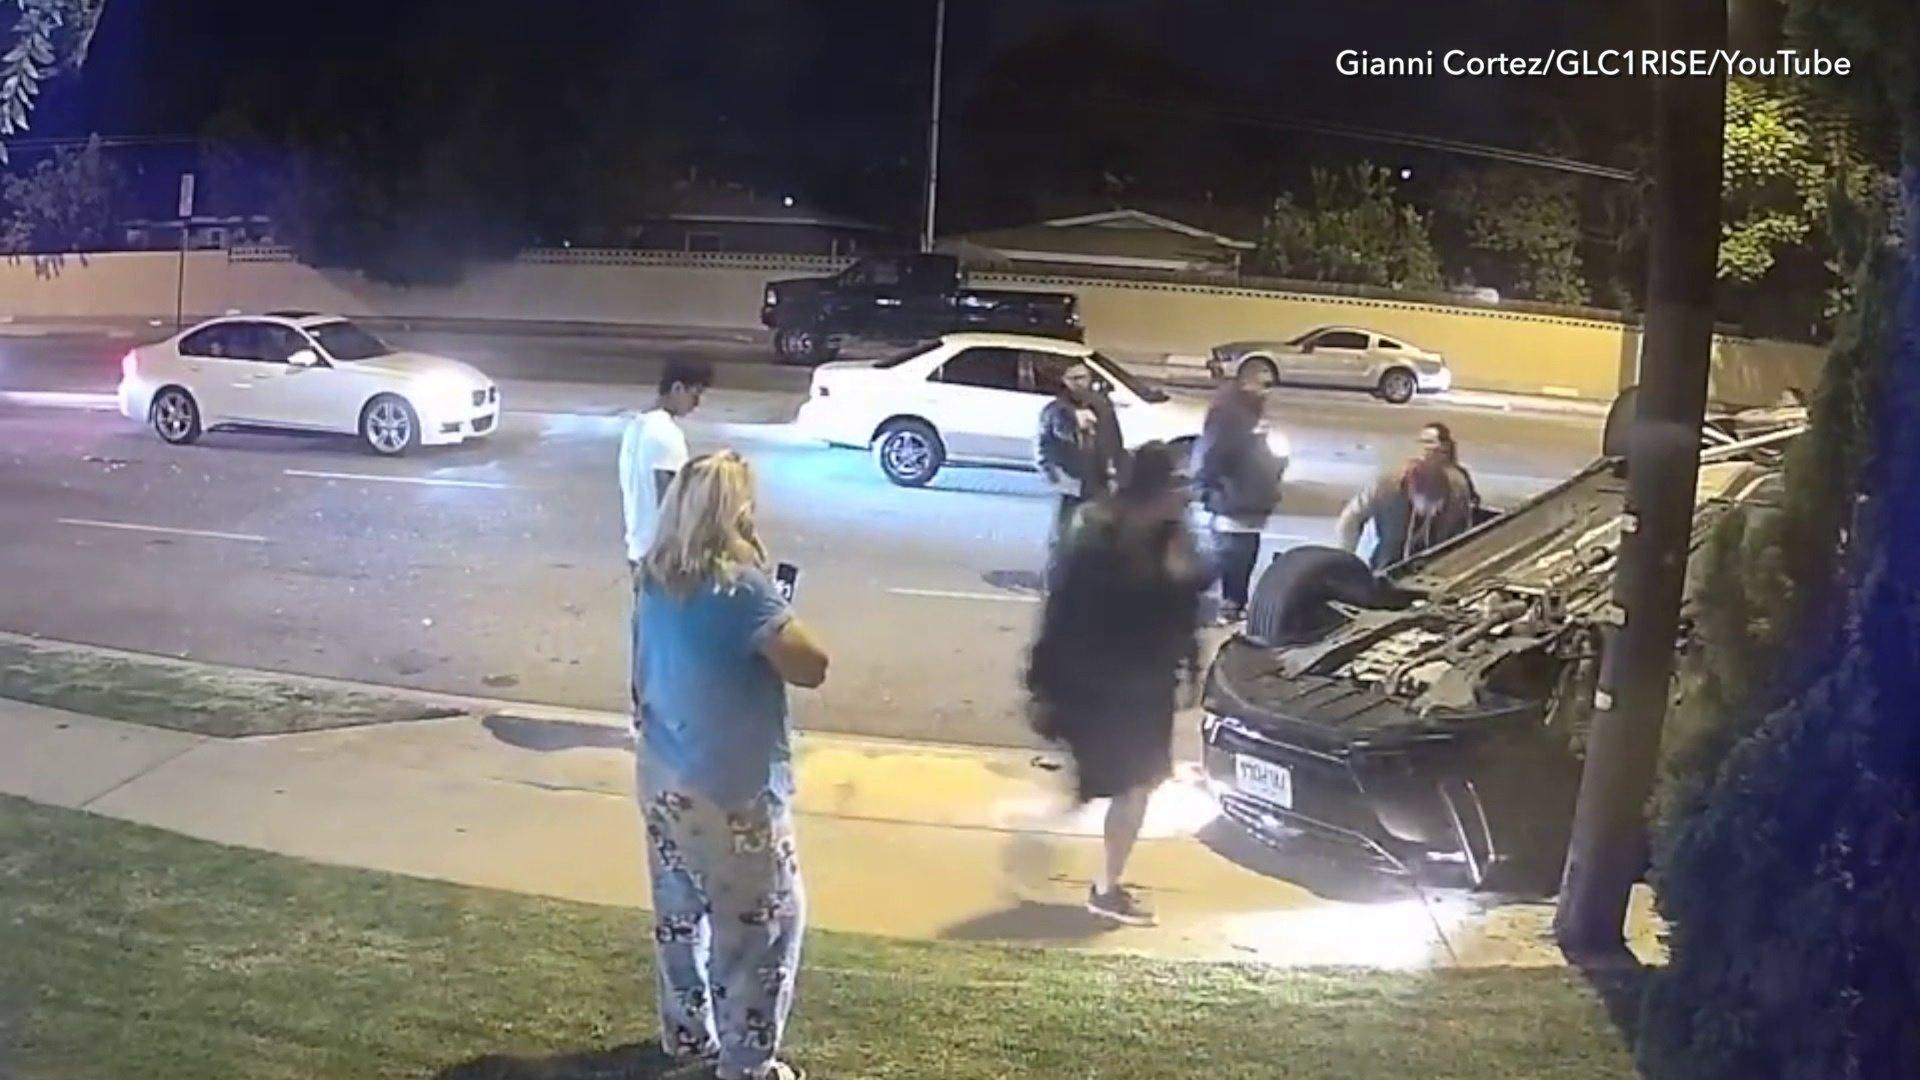 Videos Show Violent Car Crash in Southern California